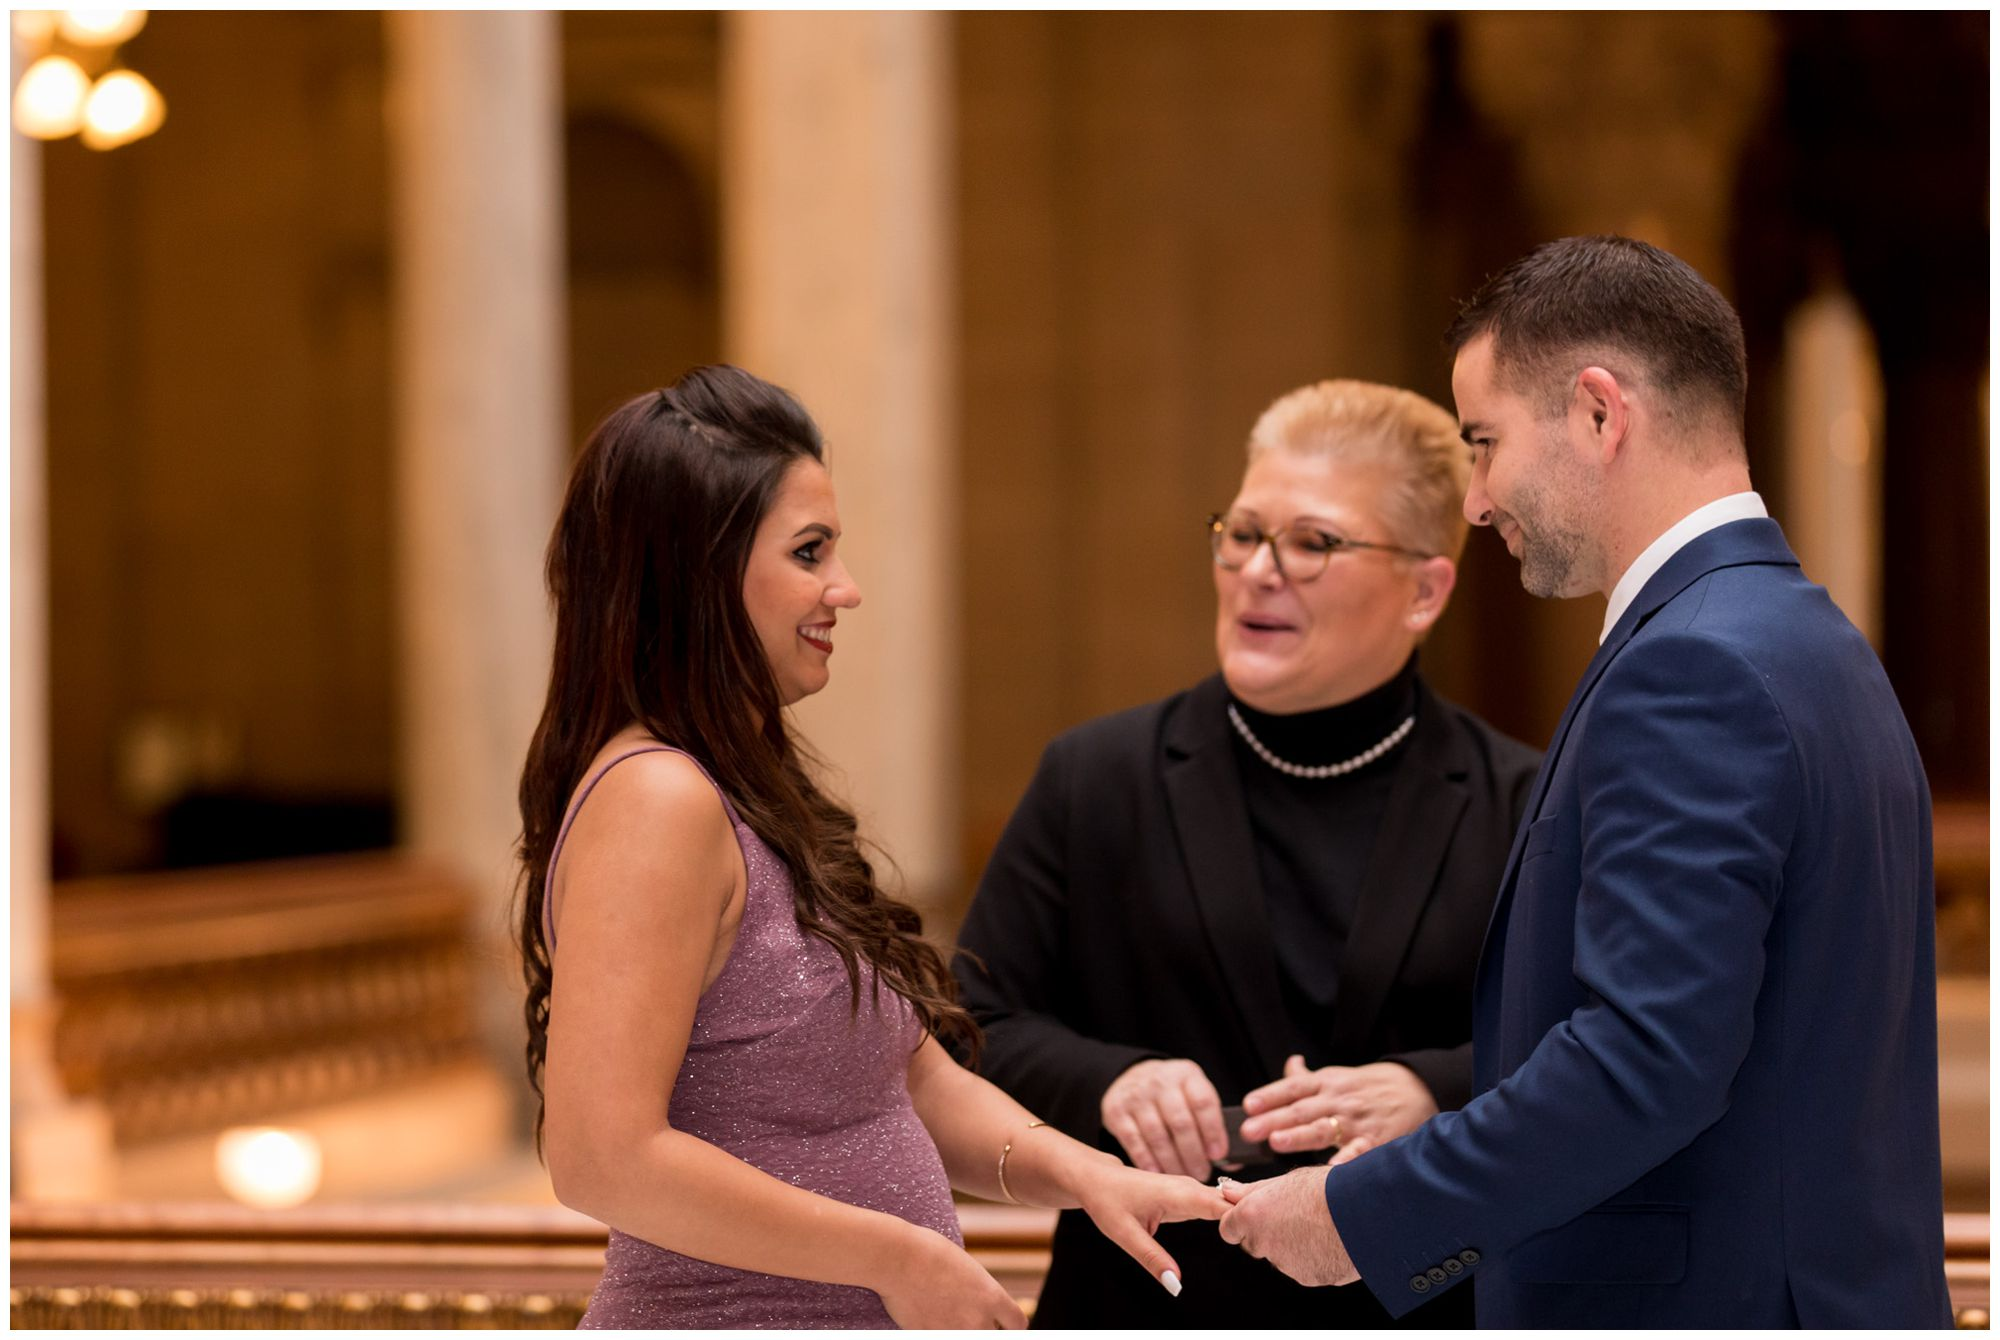 bride and groom exchange rings during Indiana Statehouse elopement ceremony in downtown Indianapolis